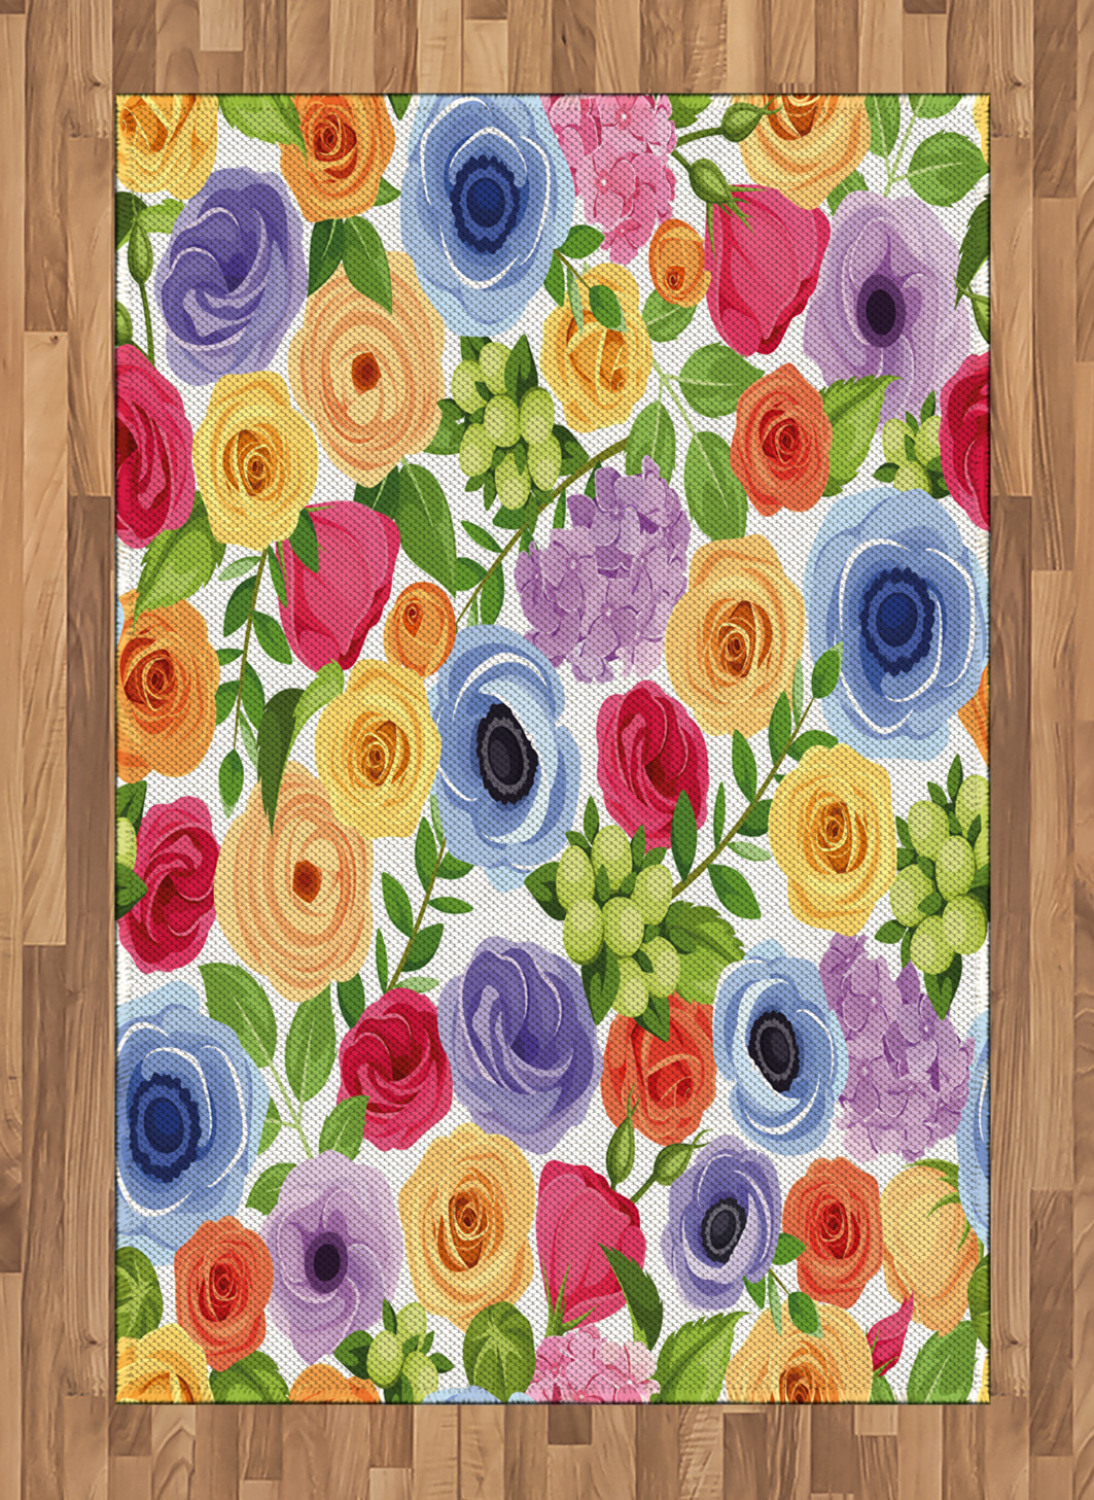 Anemone-Flower-Area-Rug-Decor-Flat-Woven-Accent-Rug-Home-Decor-2-Sizes-Ambesonne thumbnail 31